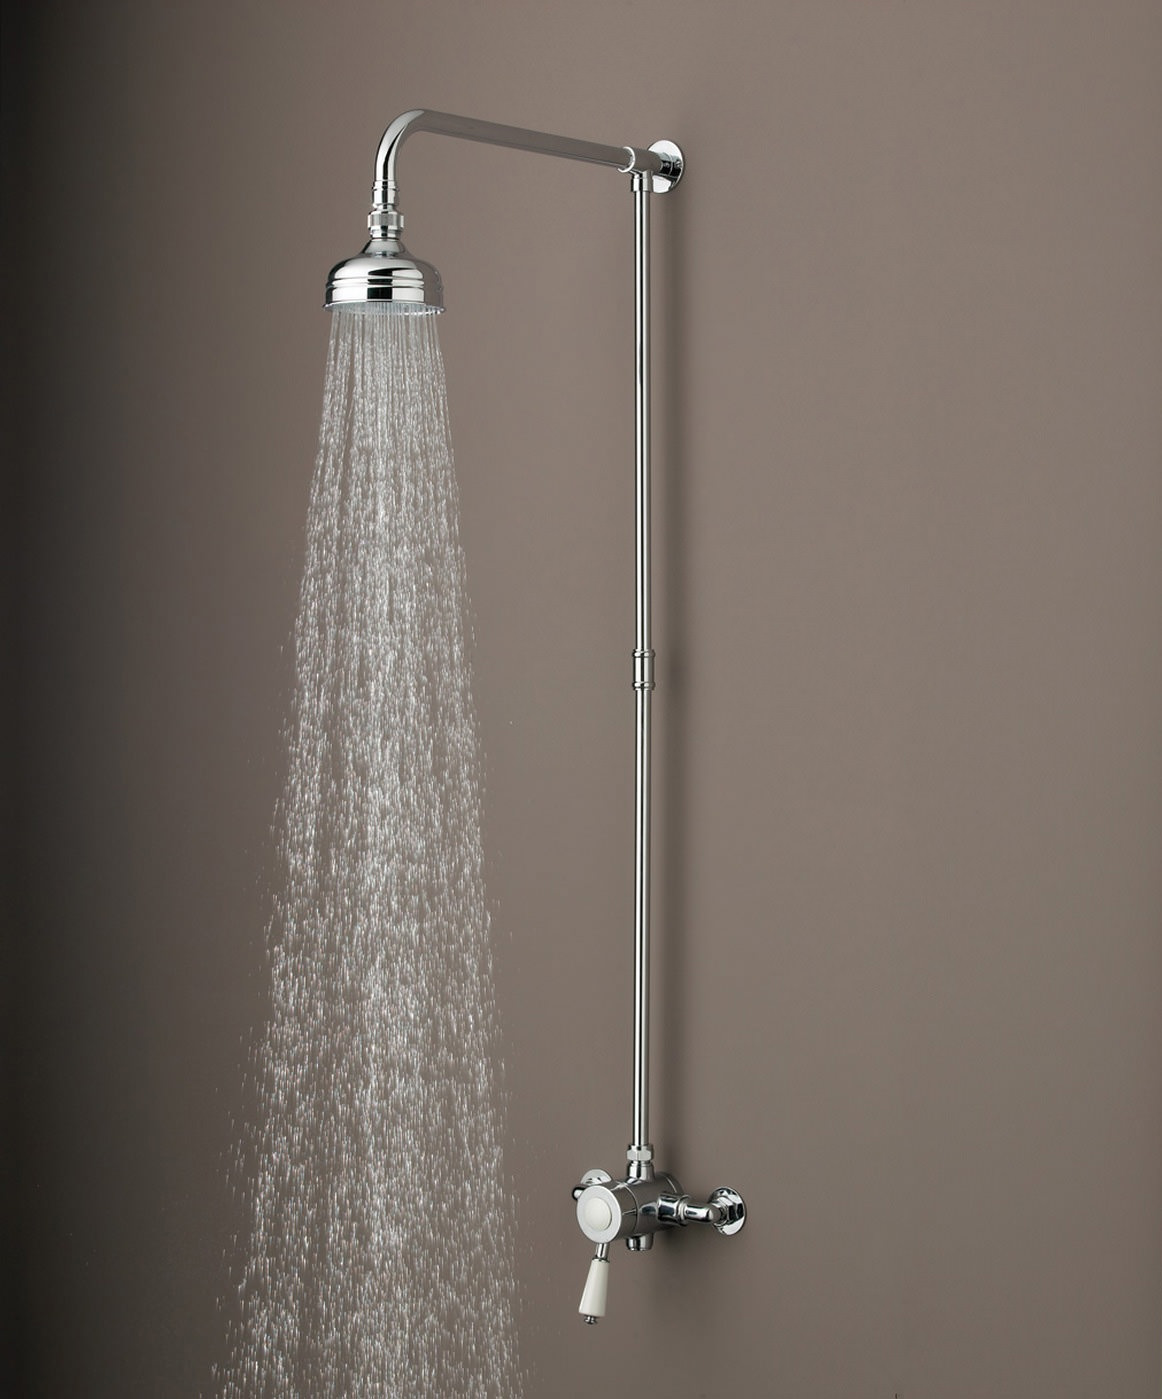 Bristan Colonial Thermostatic Surface Mounted Shower Valve With Rigid Riser